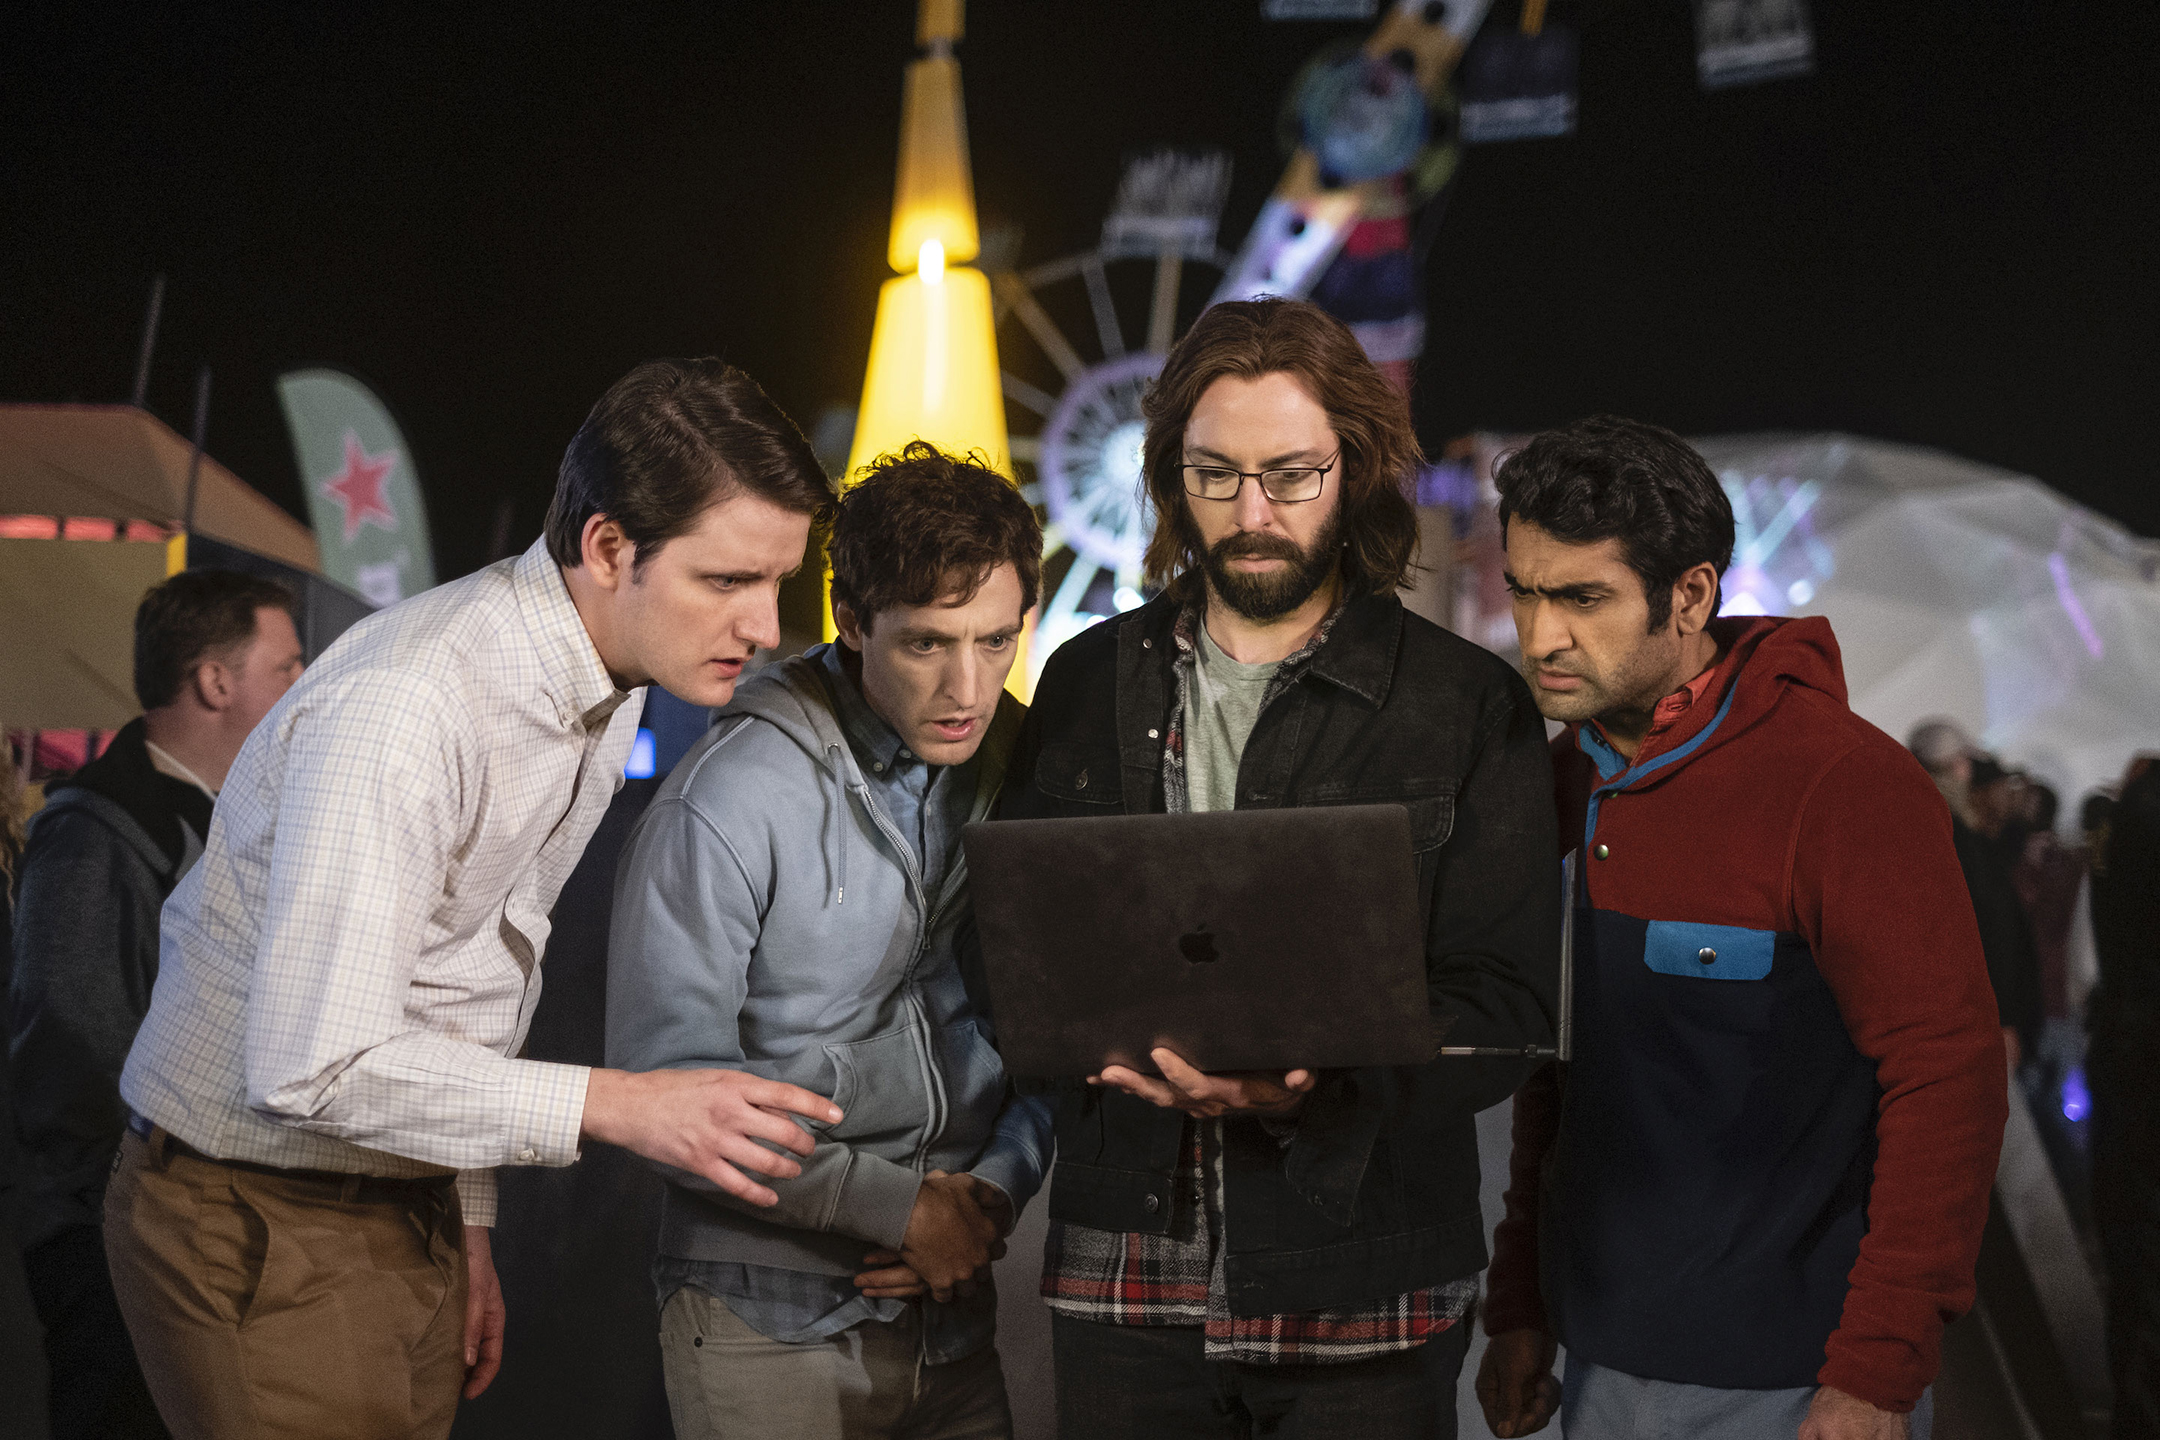 A still from the HBO series Silicon Valley showing four men standing while gaping at an open laptop